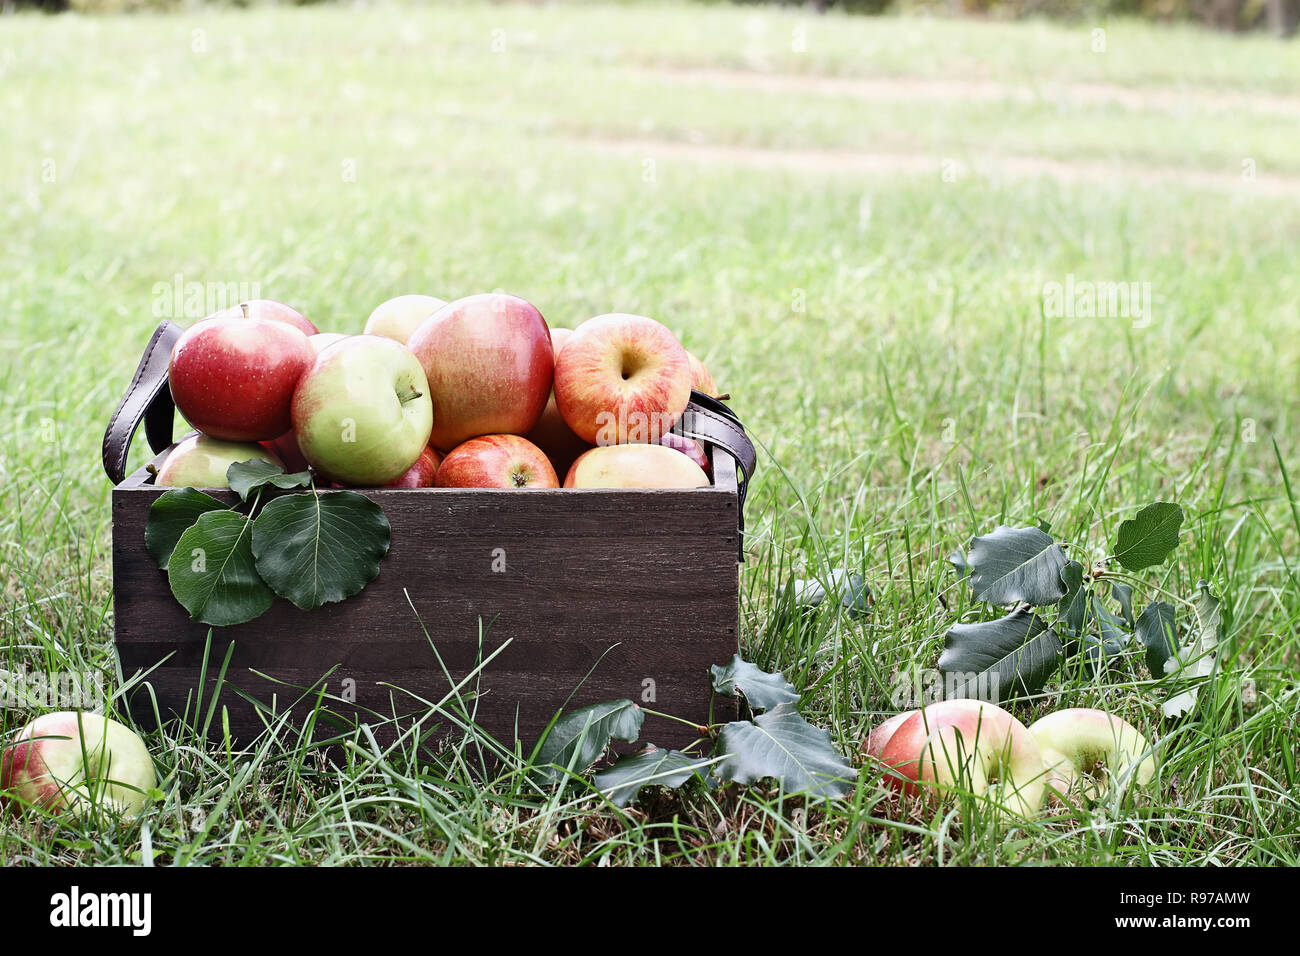 Freshly picked bushel of apples in an old vintage wooden crate with leather handles sitting in the grass at an orchard. Stock Photo